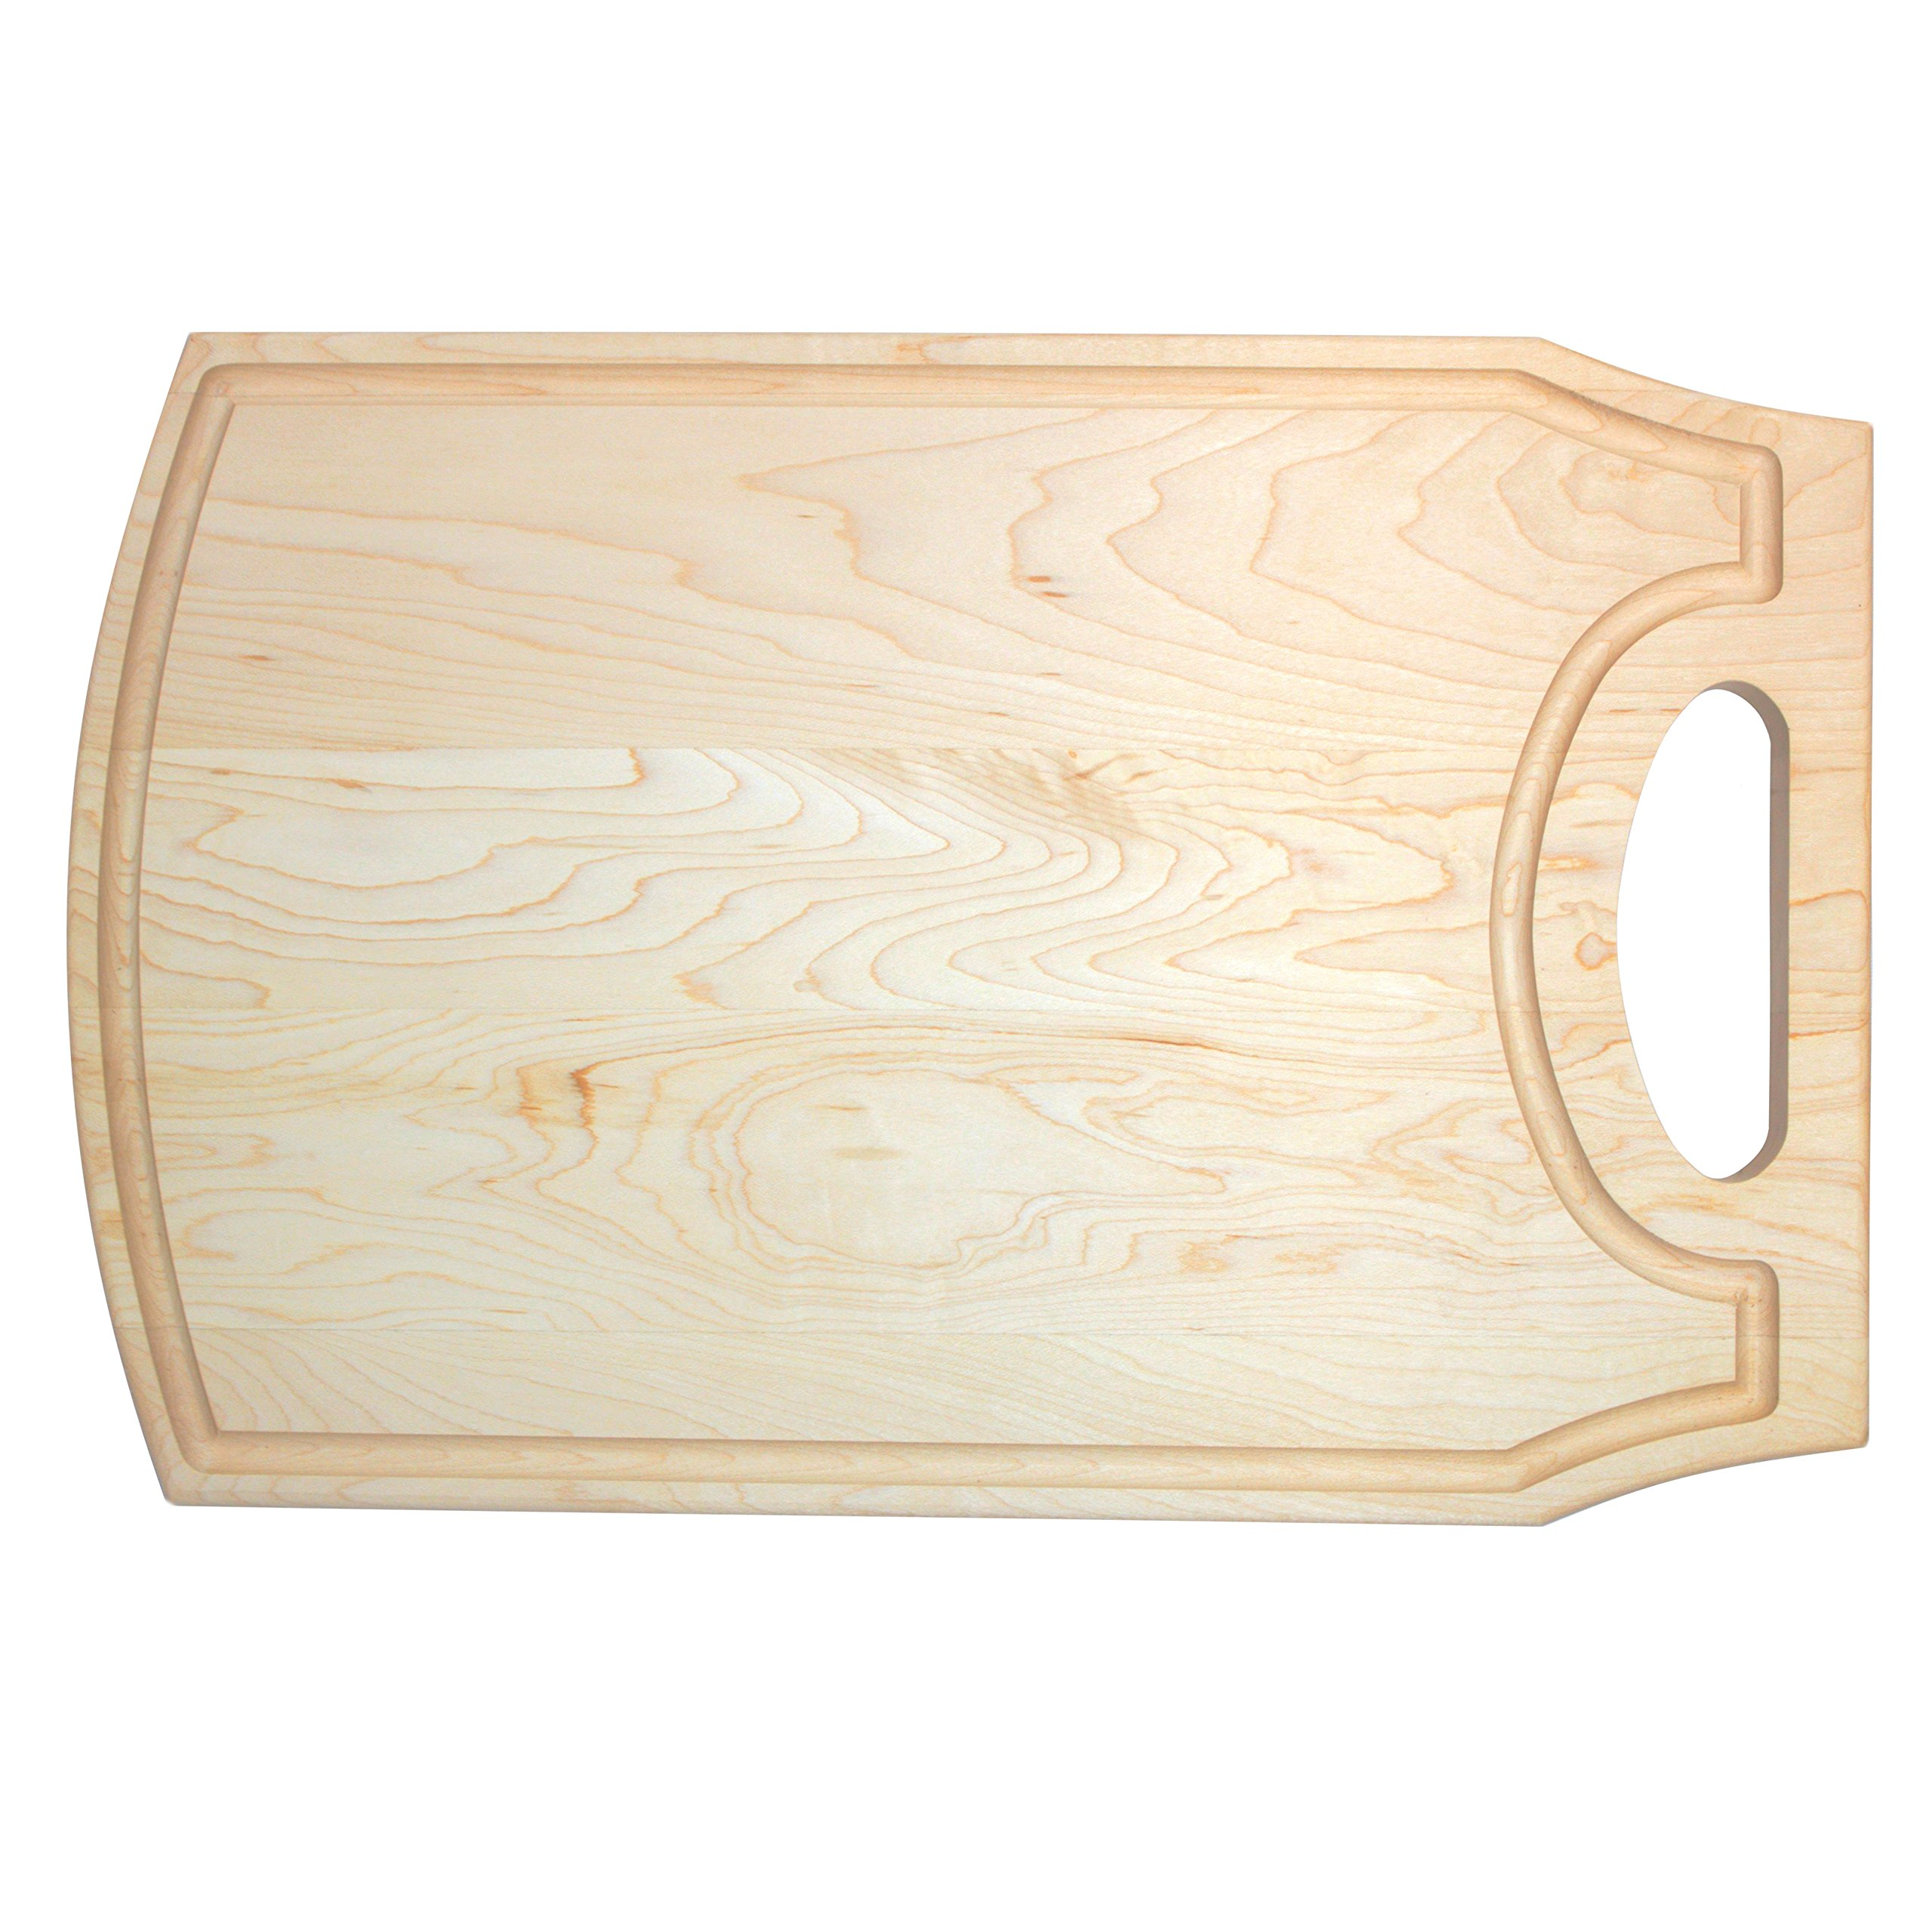 KitchenTalent Maple Cutting Board - Unique Hardwood Cutting Board - 10.5'' x 16'' x .75'' - Maple Chopping Block - Great Gift Idea